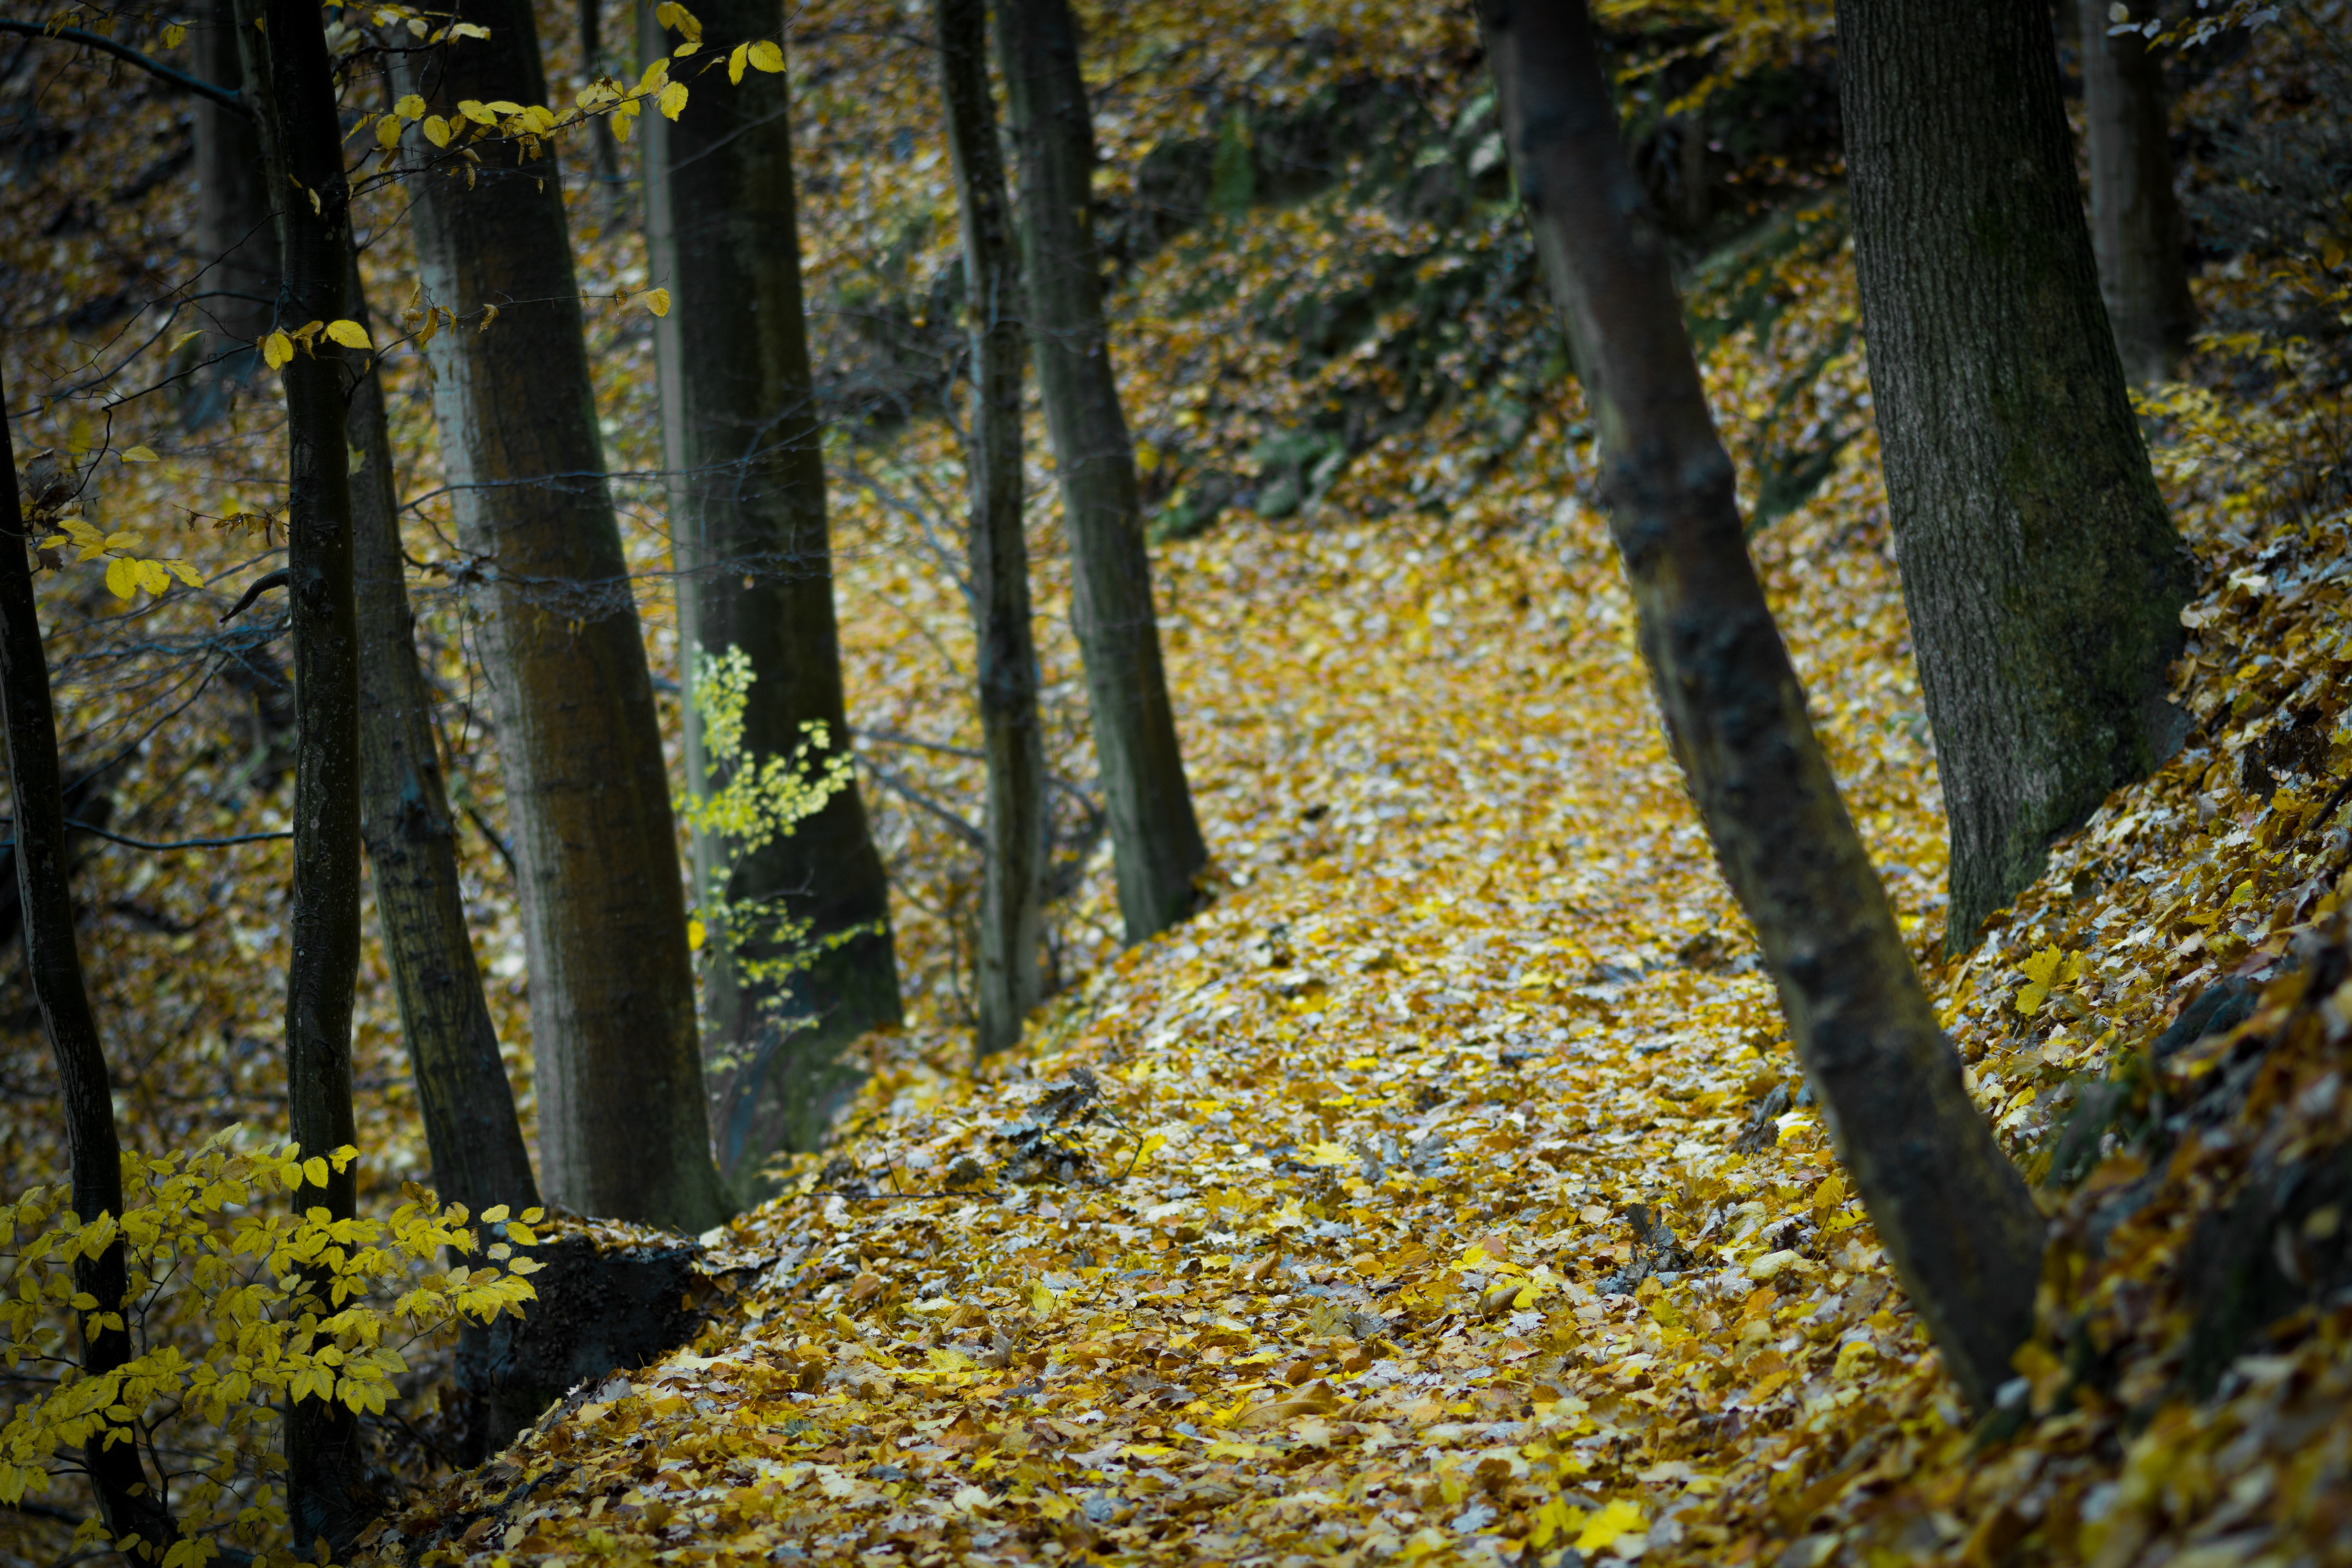 Forest Surrounded by Yellow Leaves on Ground, Autumn, Nature, Trees, Tree trunks, HQ Photo